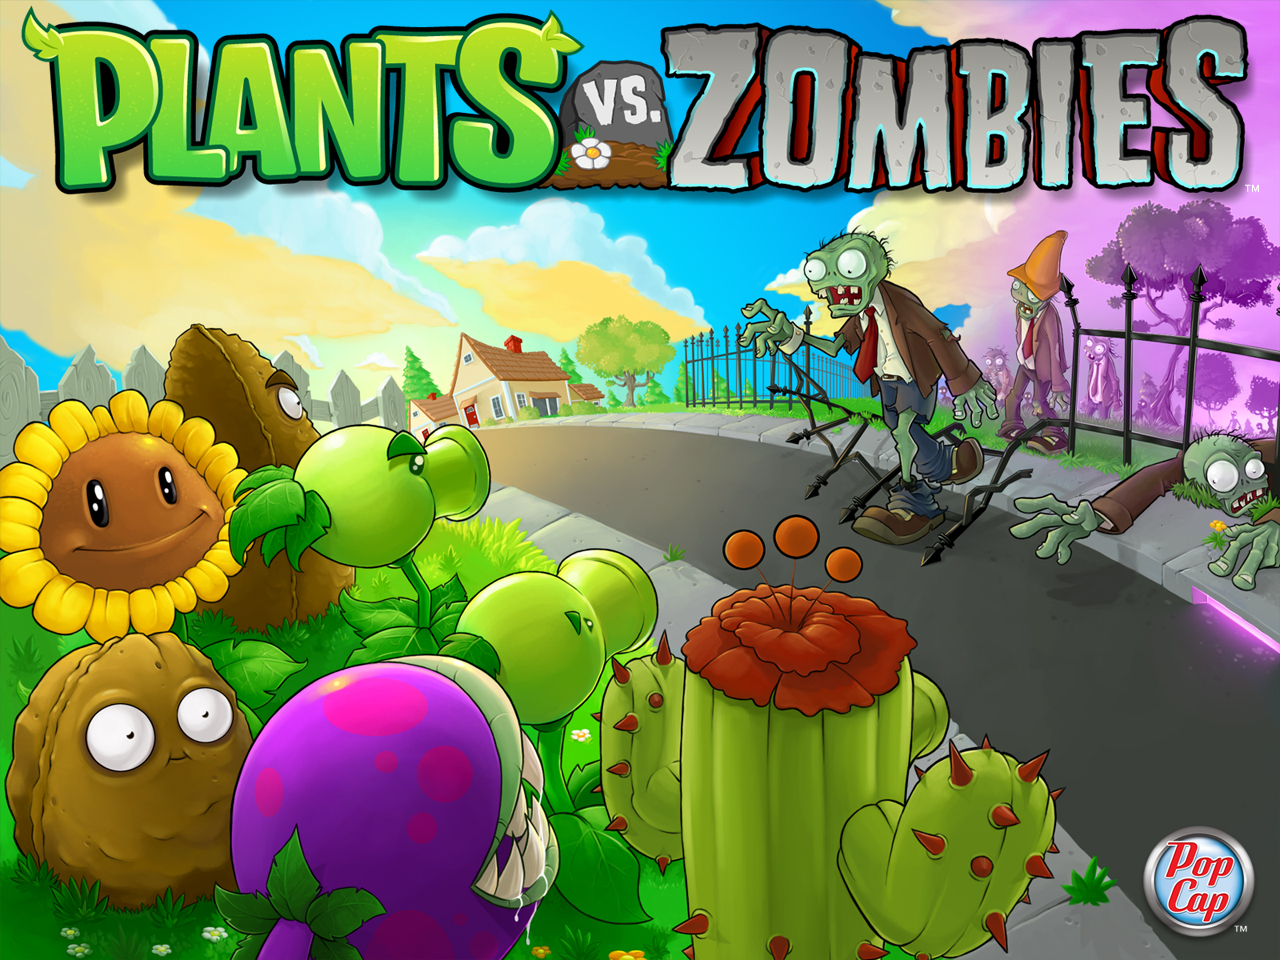 Plants vs. Zombies Adventures also has a town-building mechanic that